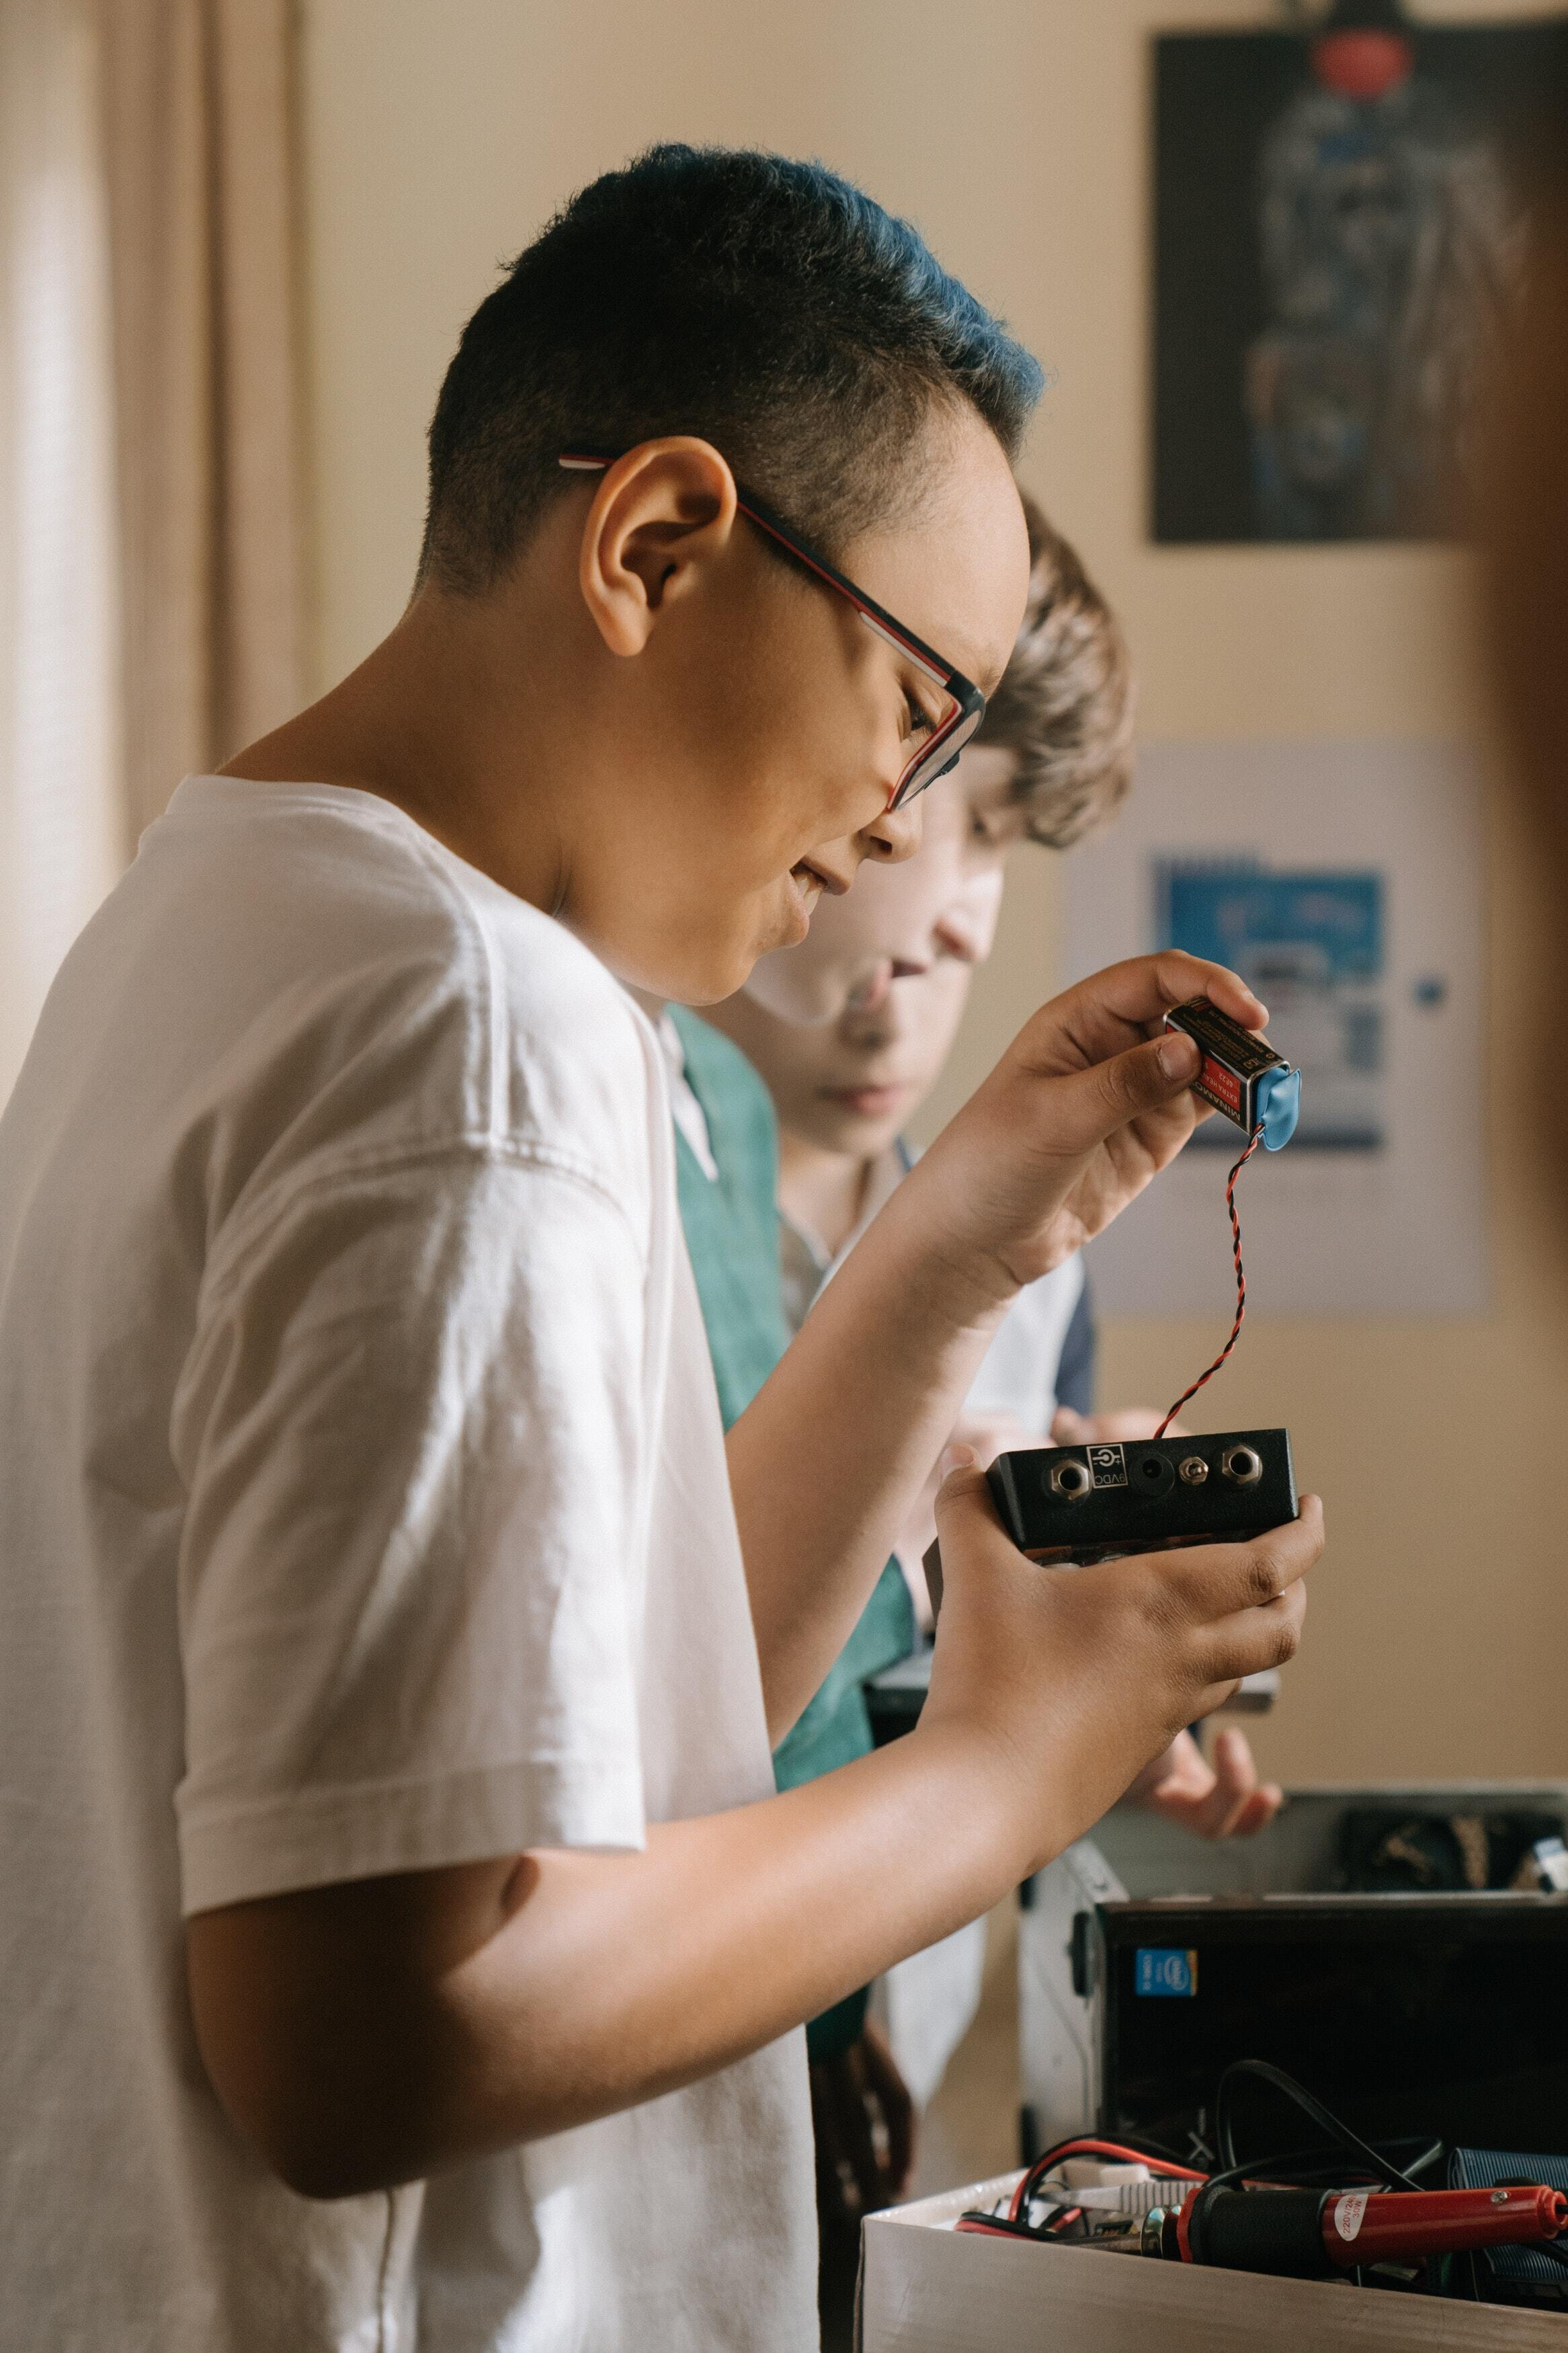 a young boy connecting a battery to a device